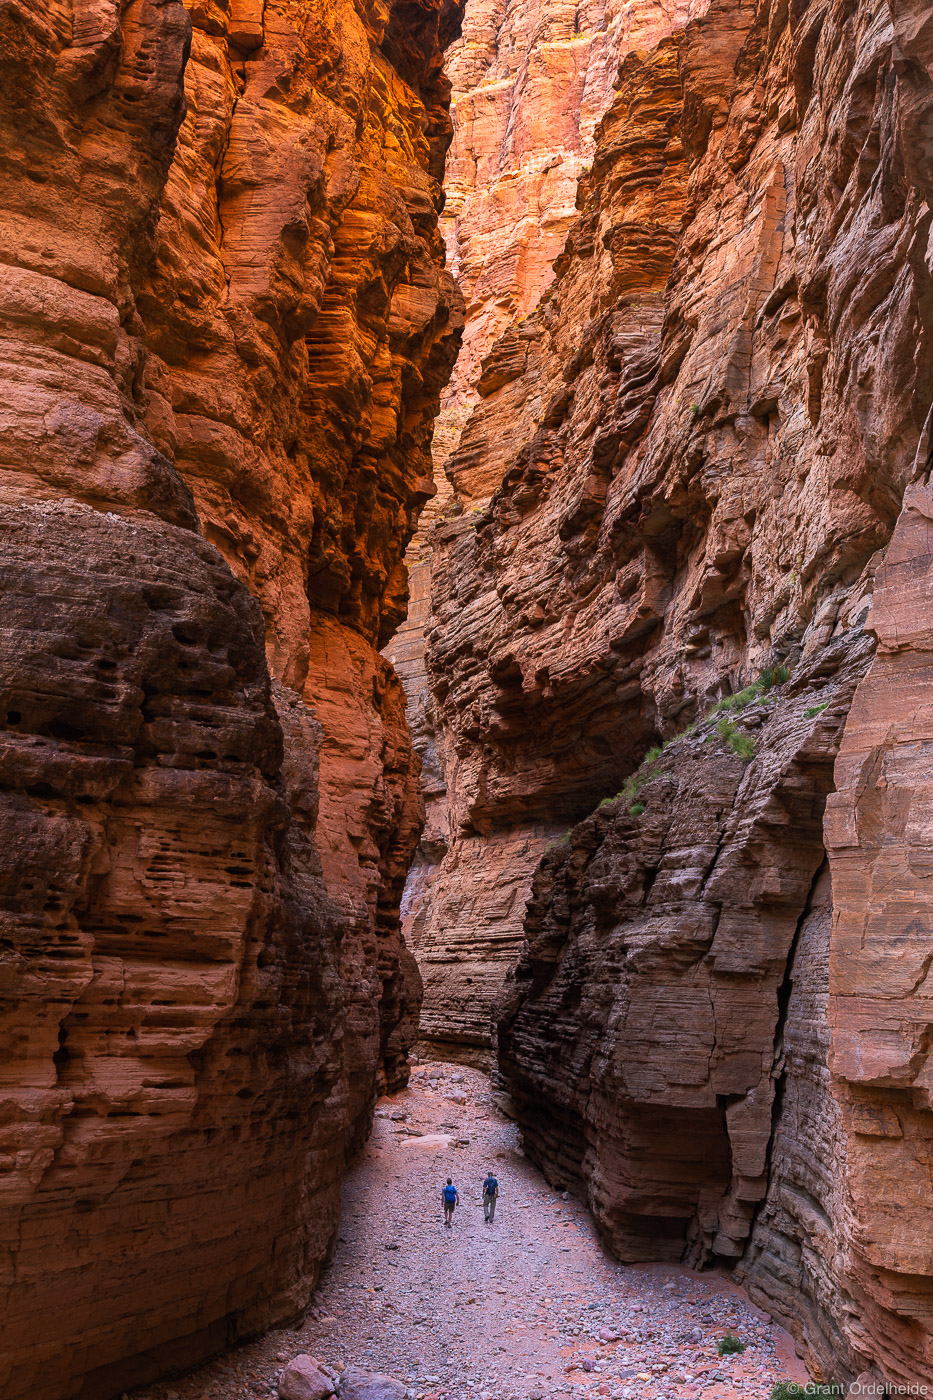 A couple of hikers dwarfed by Fern Glen Canyon, a side canyon of the Grand Canyon.